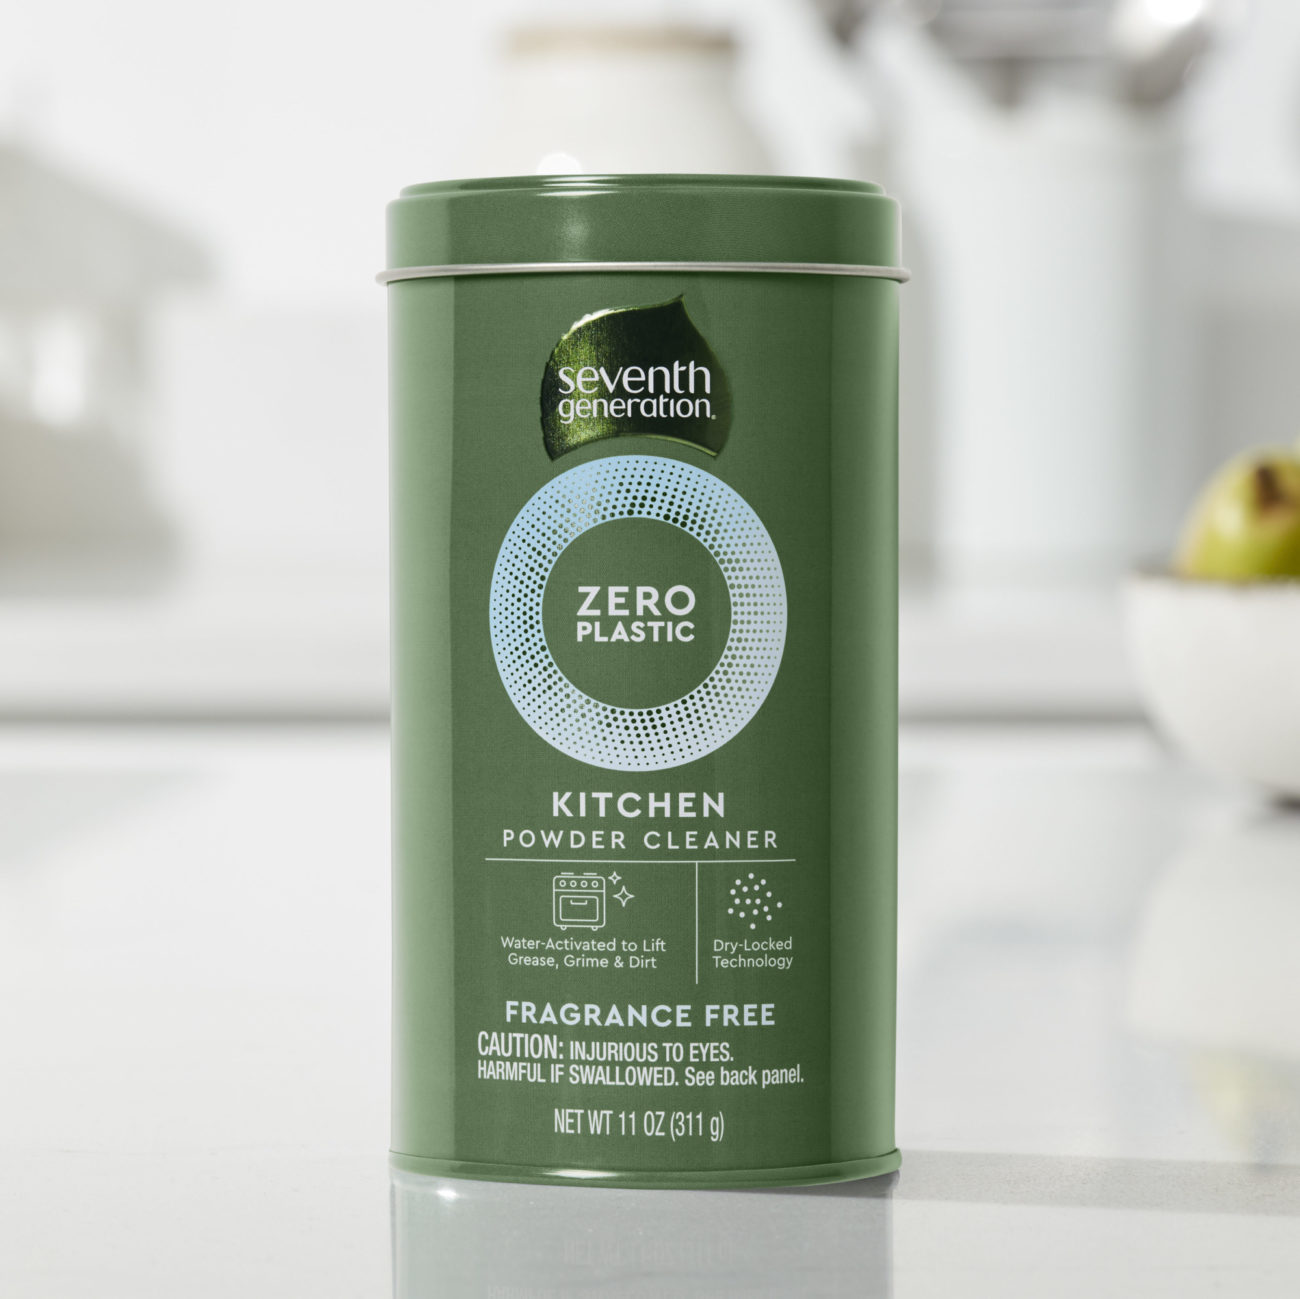 How Seventh Generation designed their Zero Plastic cleaning line